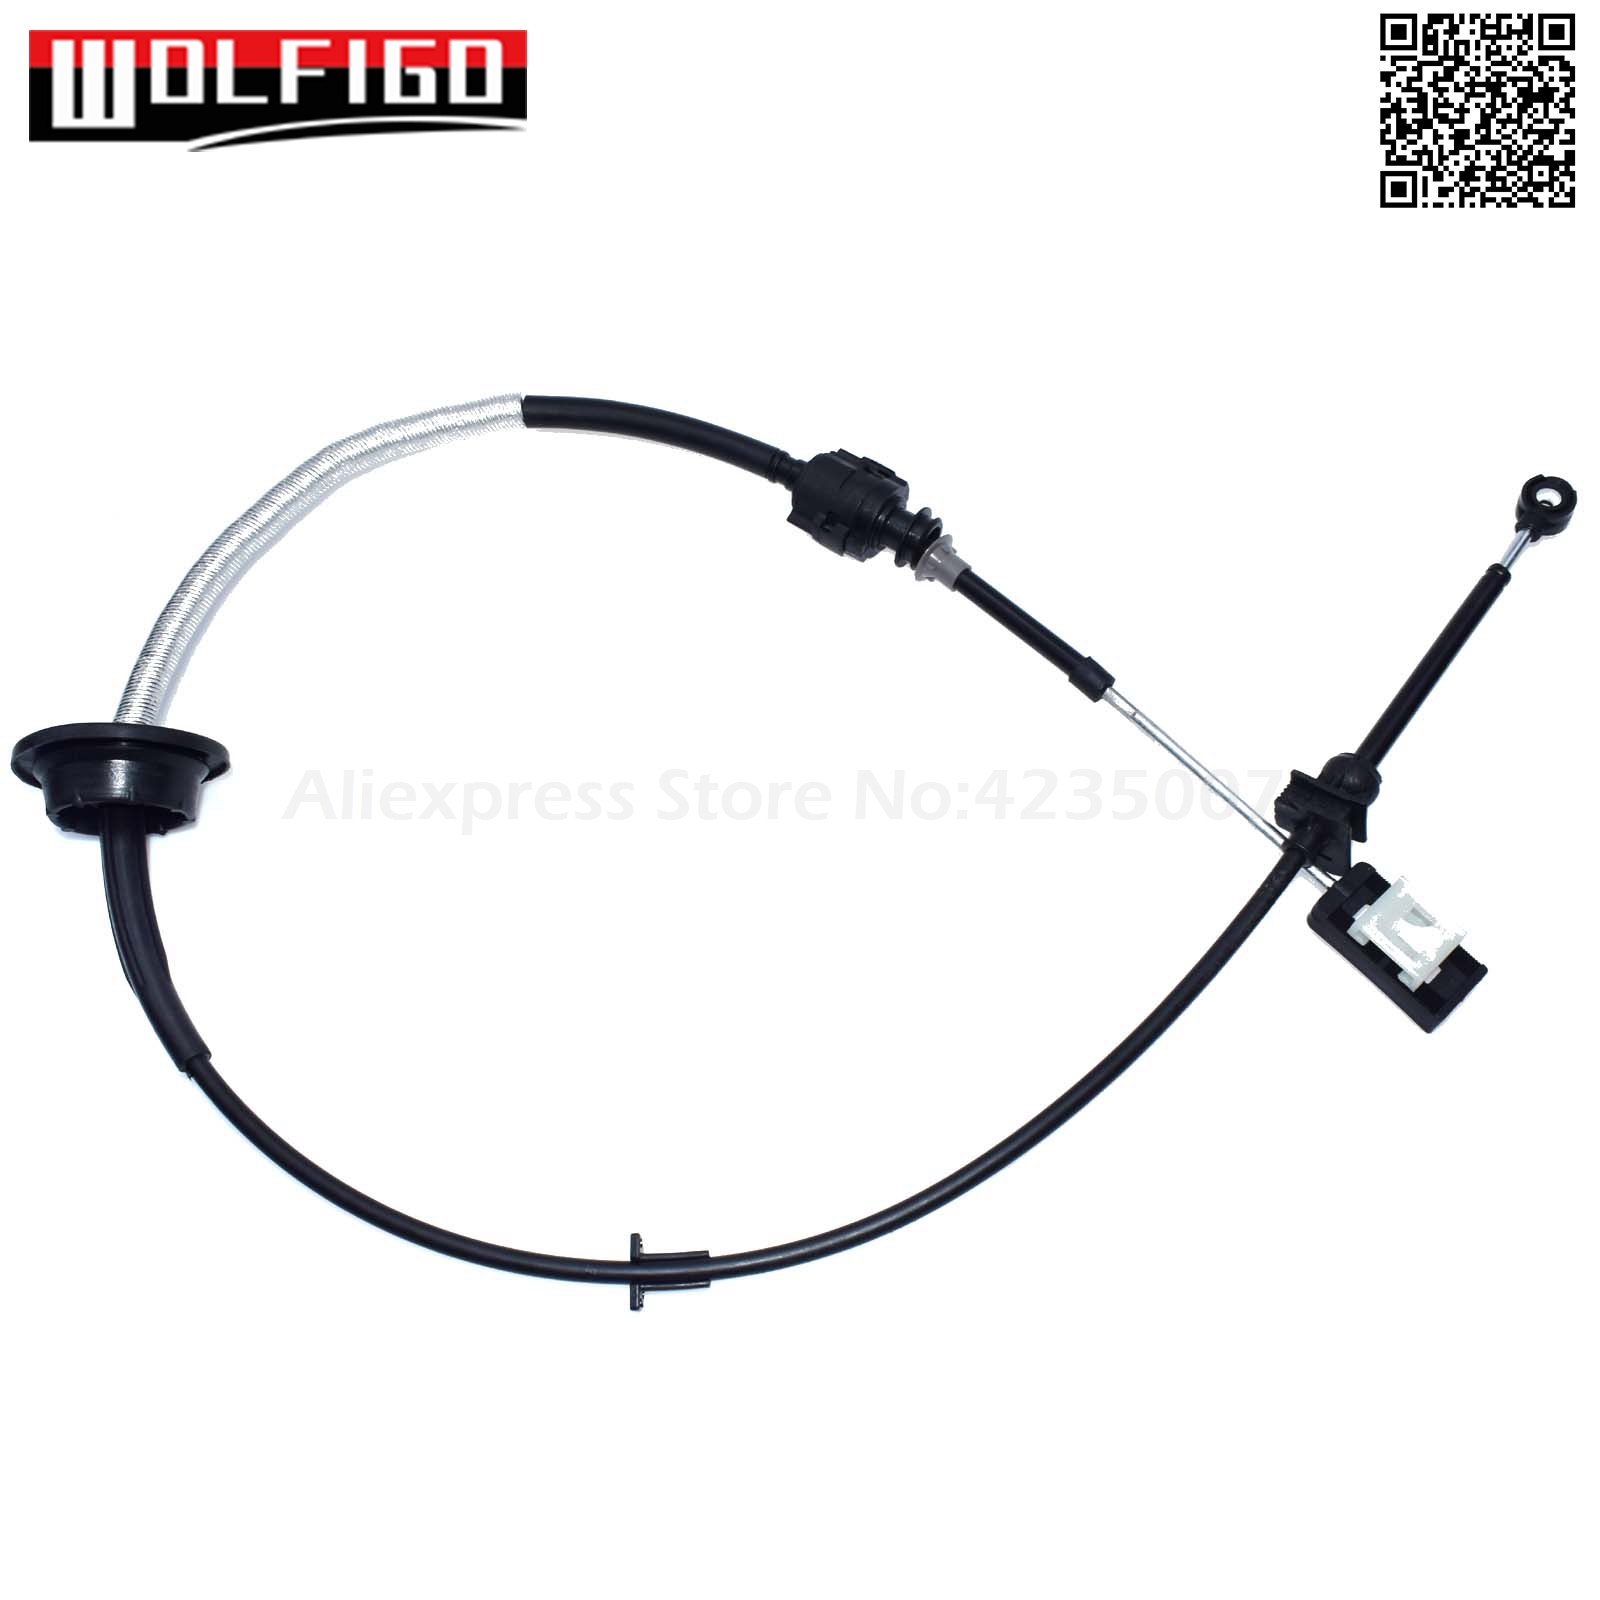 Transmission Shift Cable Ford F-150 2005-2008 Column Shift Only